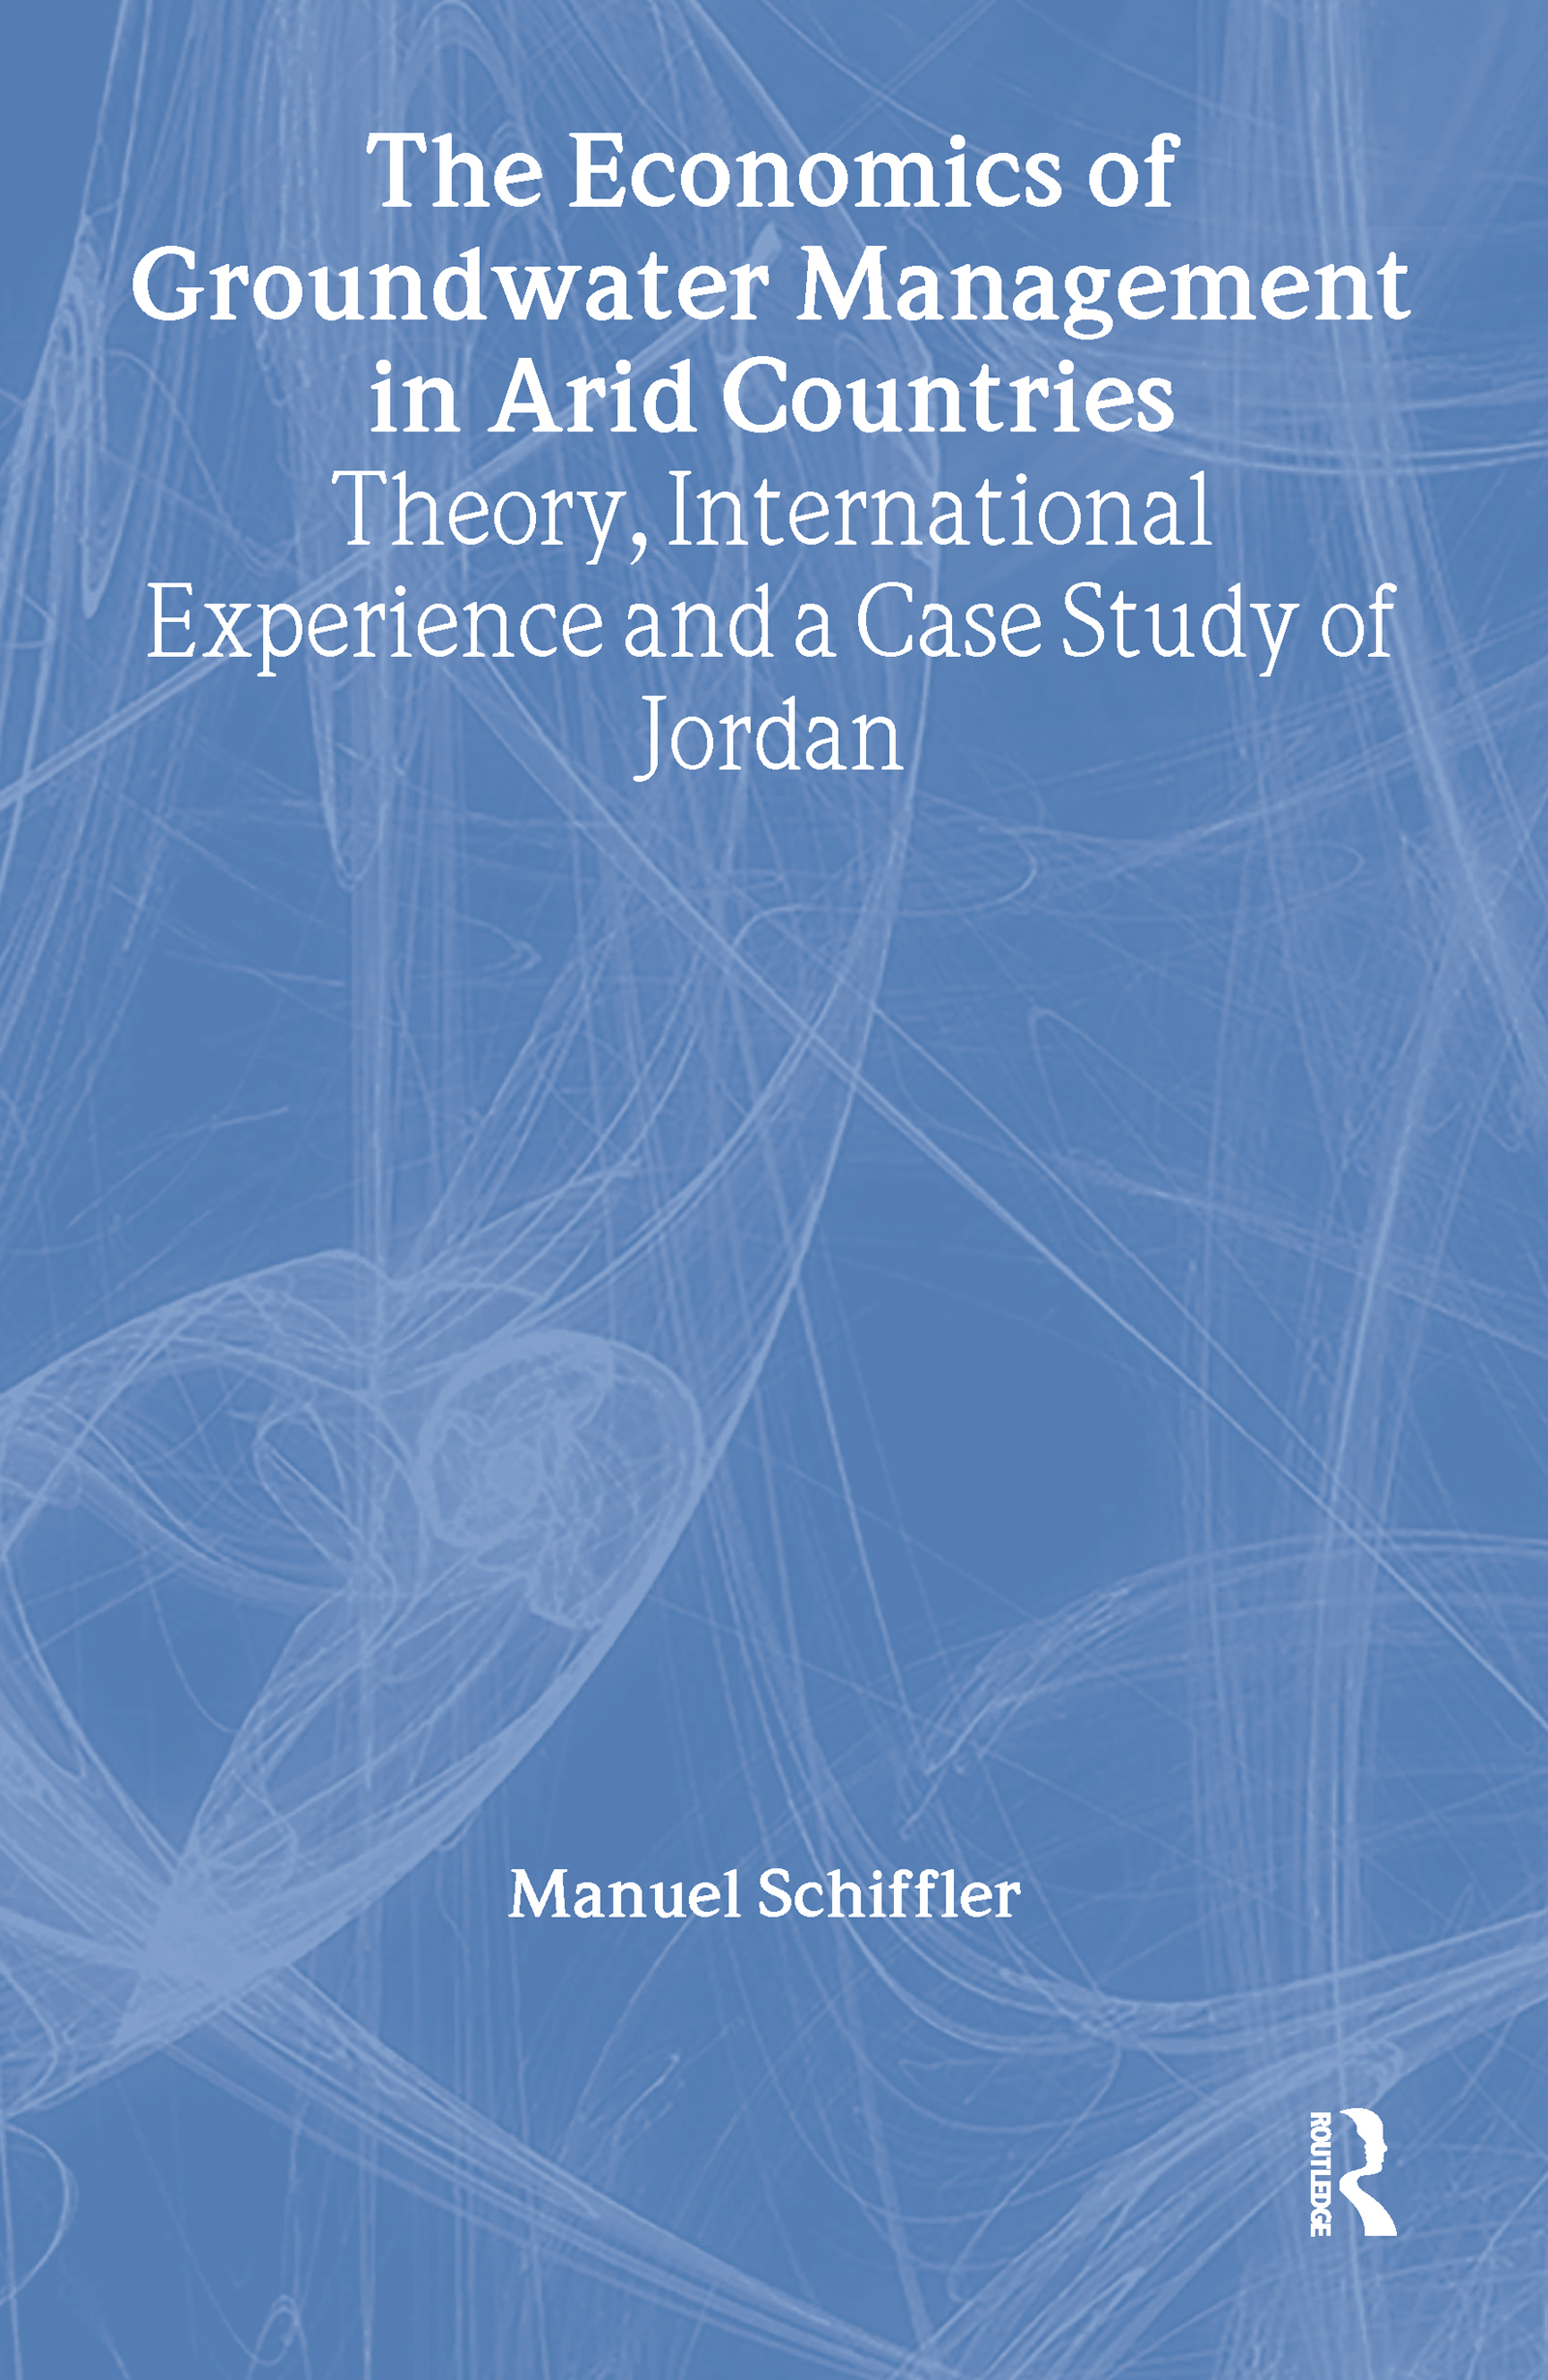 The Economics of Groundwater Management in Arid Countries: Theory, International Experience and a Case Study of Jordan, 1st Edition (Paperback) book cover